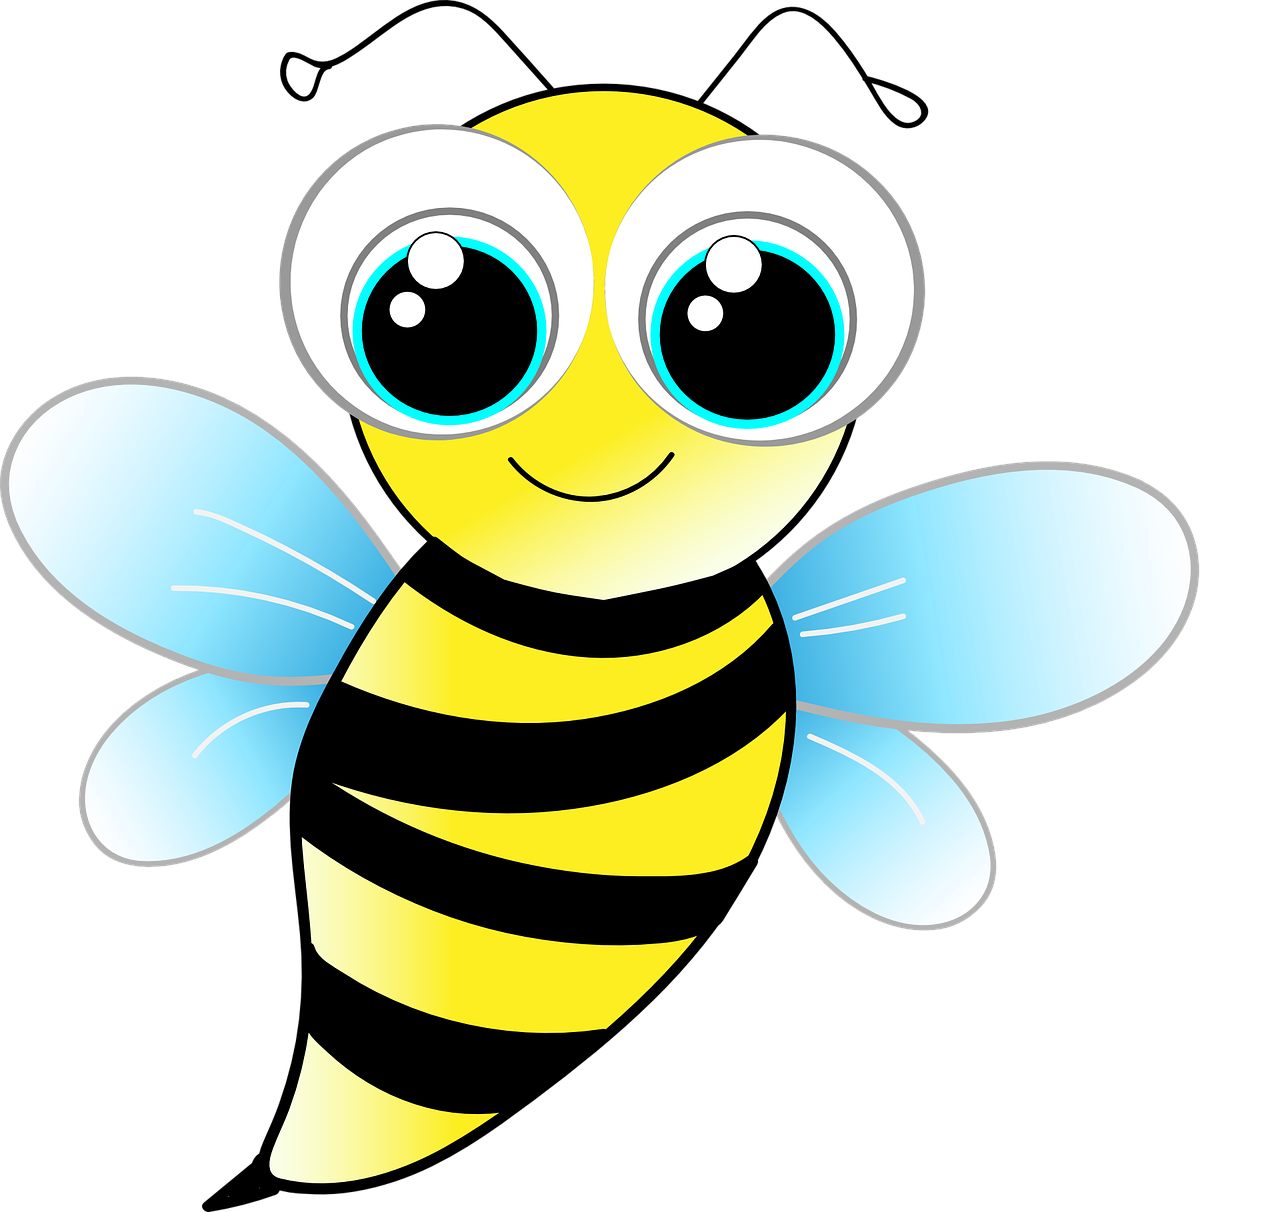 Heart clipart bee. Free image on pixabay